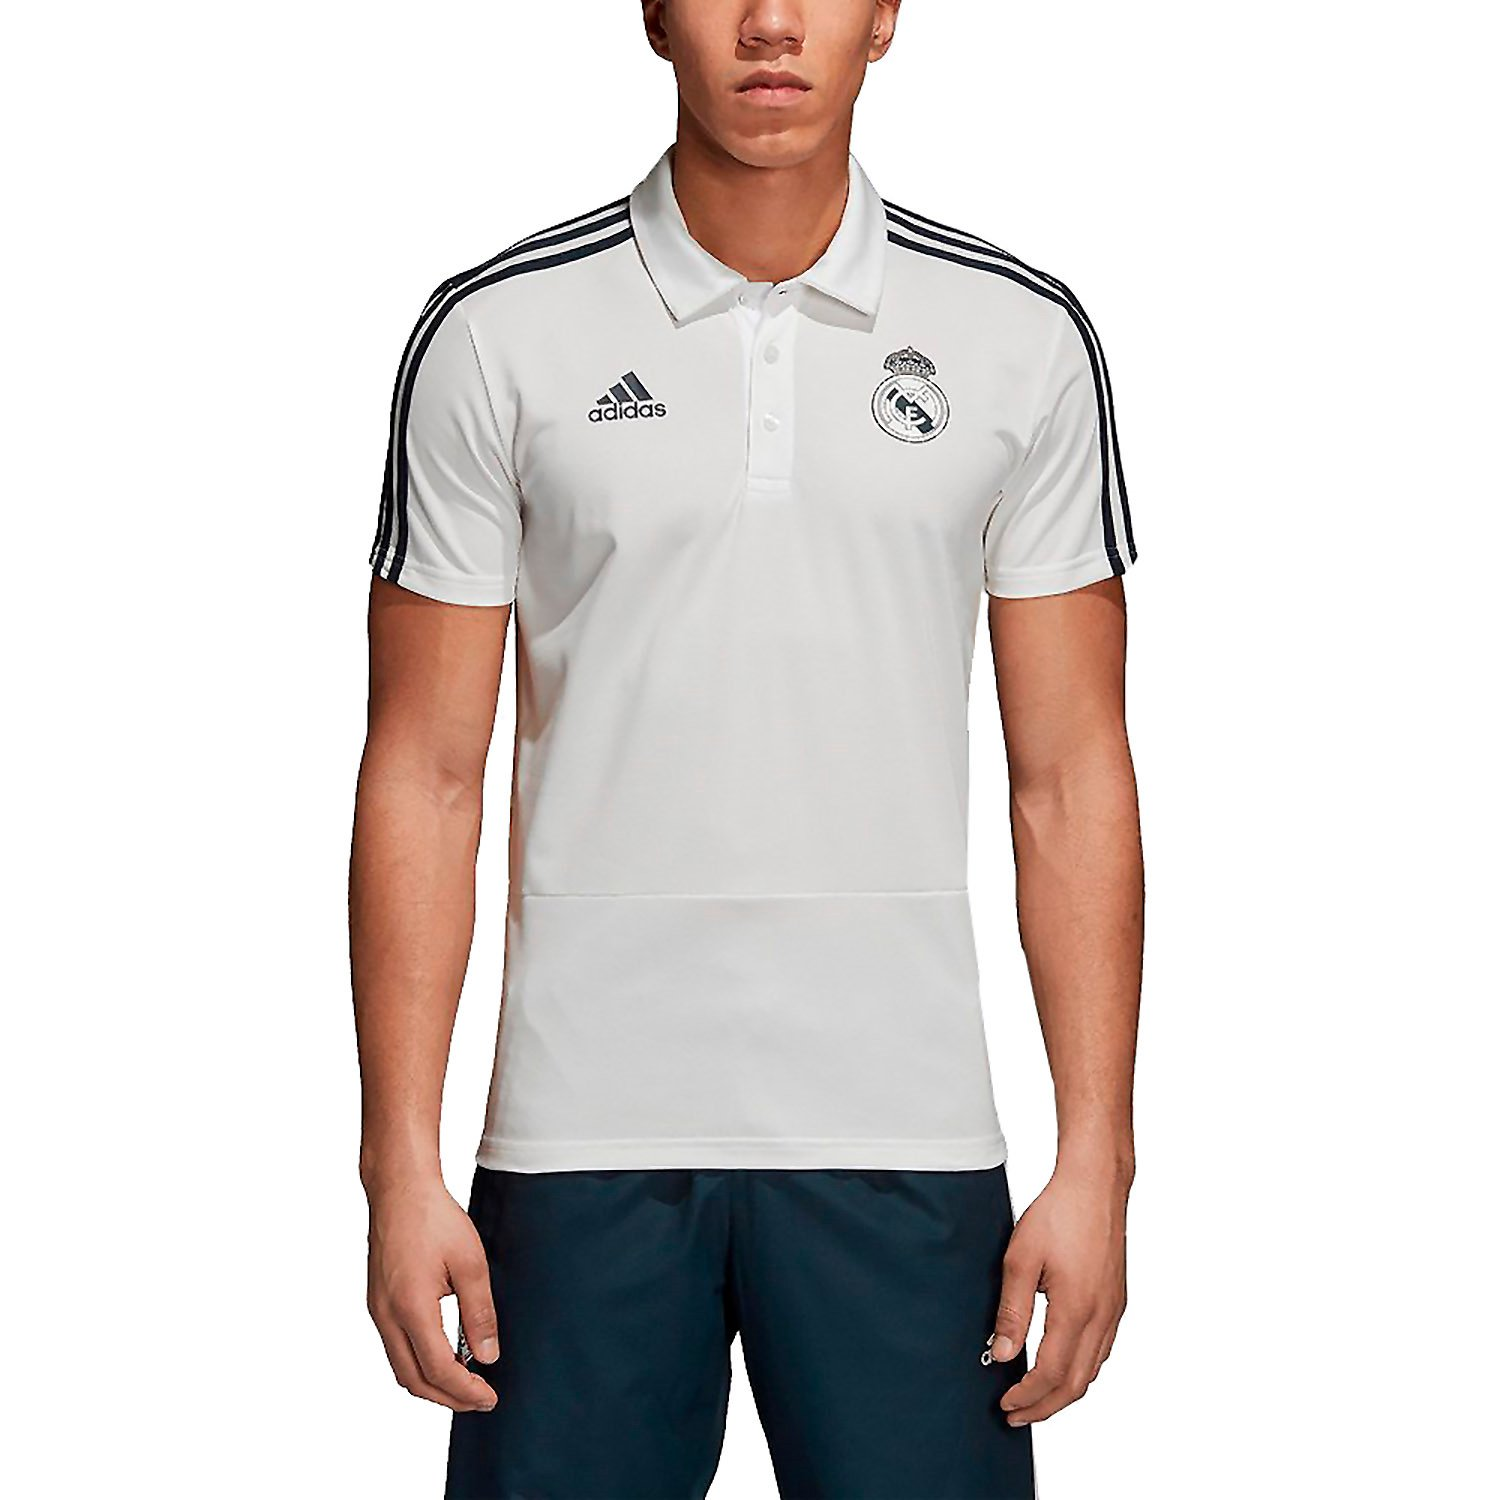 adidas 2018-2019 Real Madrid Polo Football Soccer T-Shirt Jersey (White)